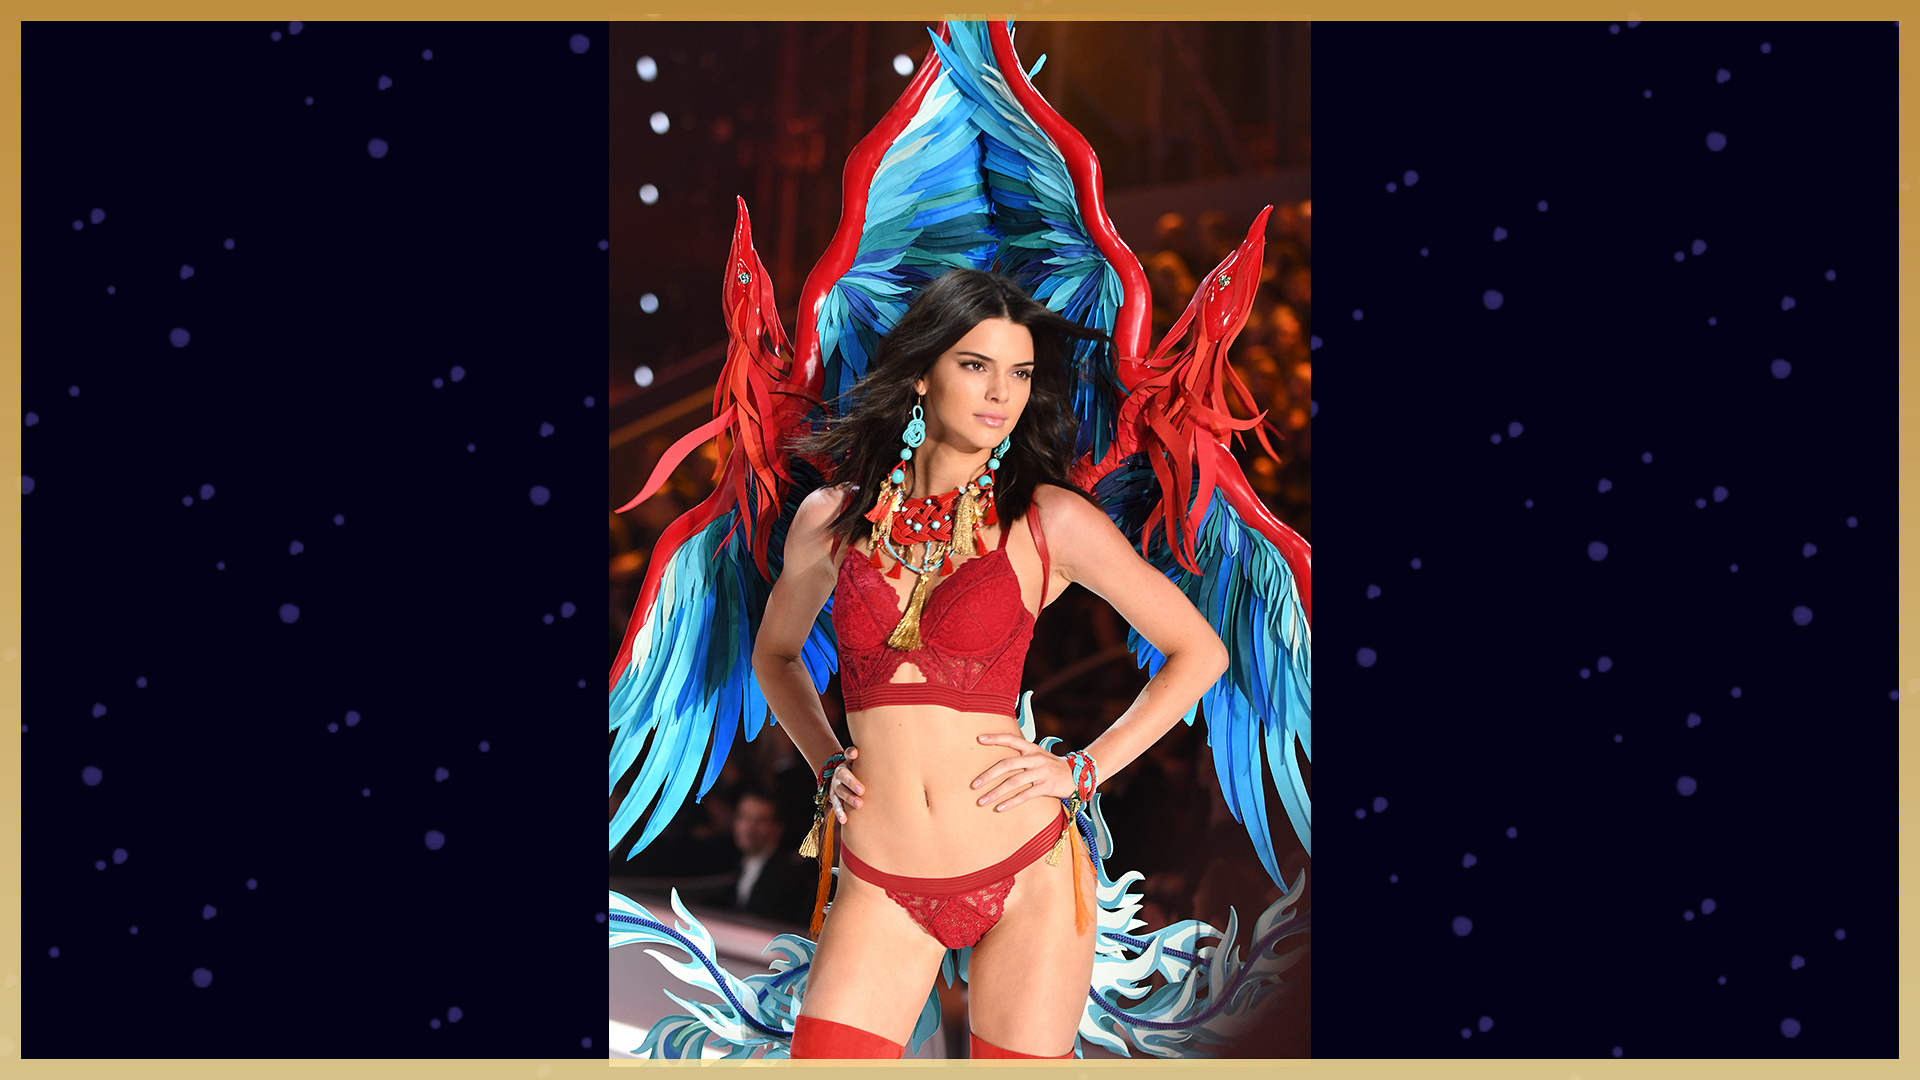 Kendall Jenner's red and turquoise wings